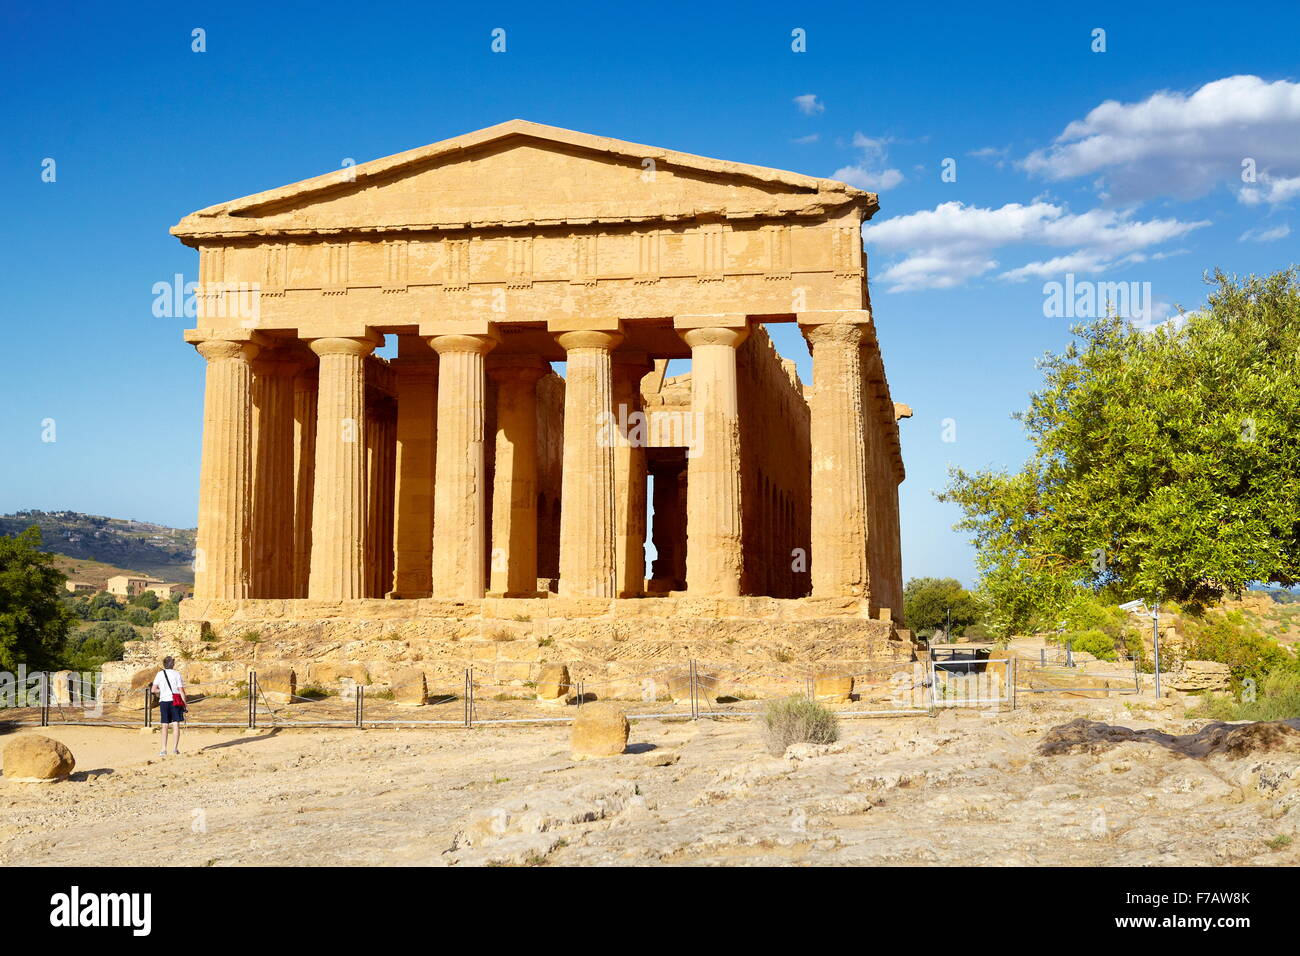 Sicily Island - Temple of Concordia, Valley of Temples (Valle dei Templi), Agrigento, Italy UNESCO - Stock Image